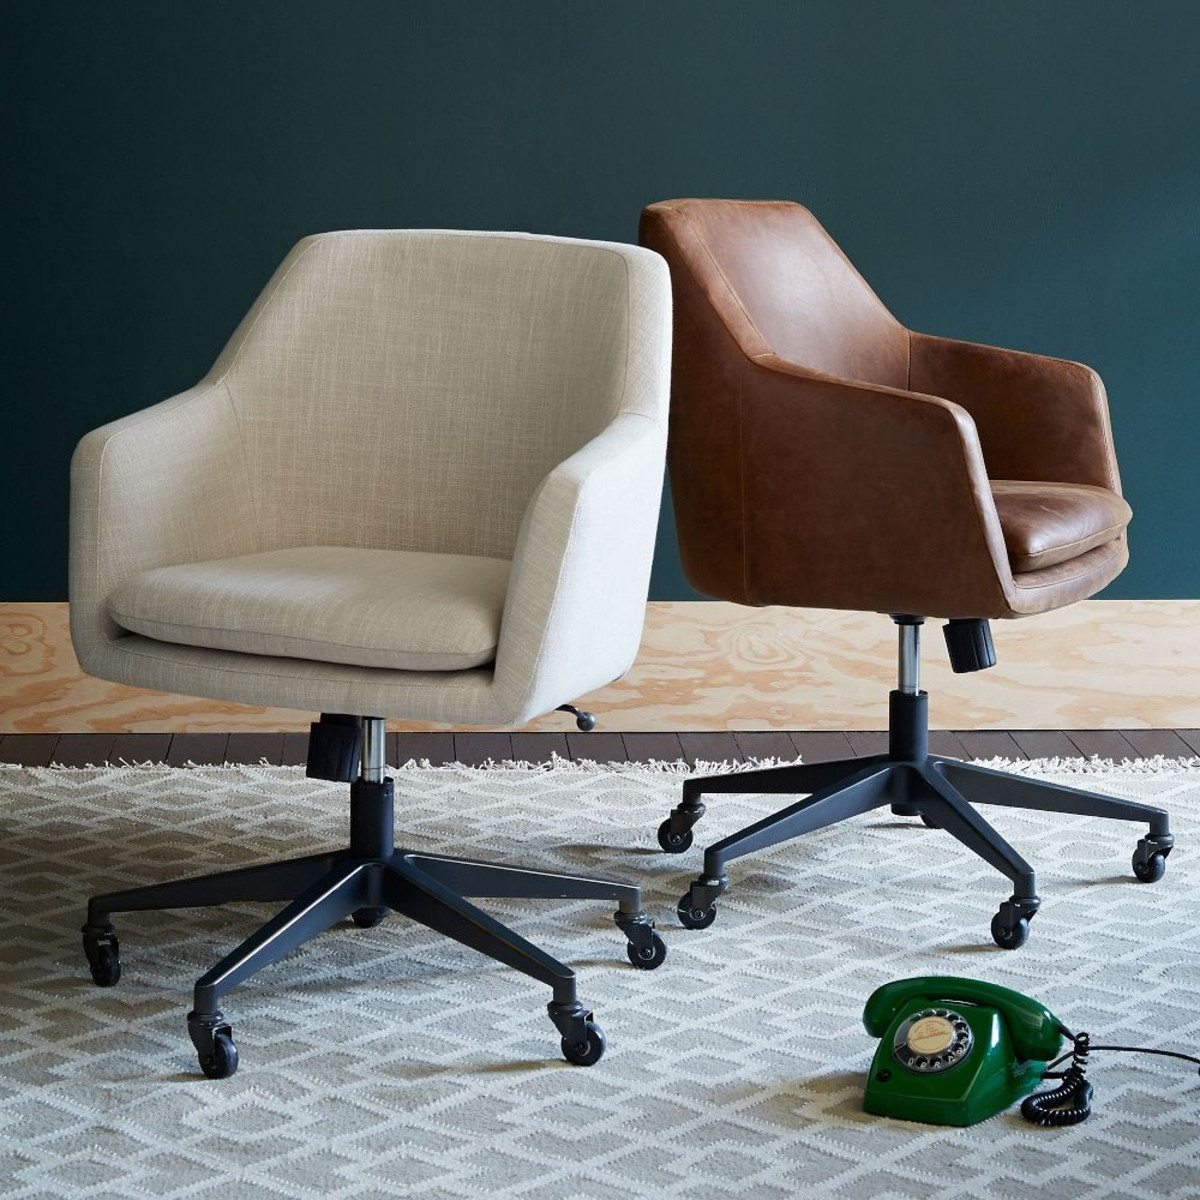 Upholstered Executive Office Chairs Regarding Preferred Upholstered Desk Chair Design : Varied And Striking Upholstered (View 12 of 20)